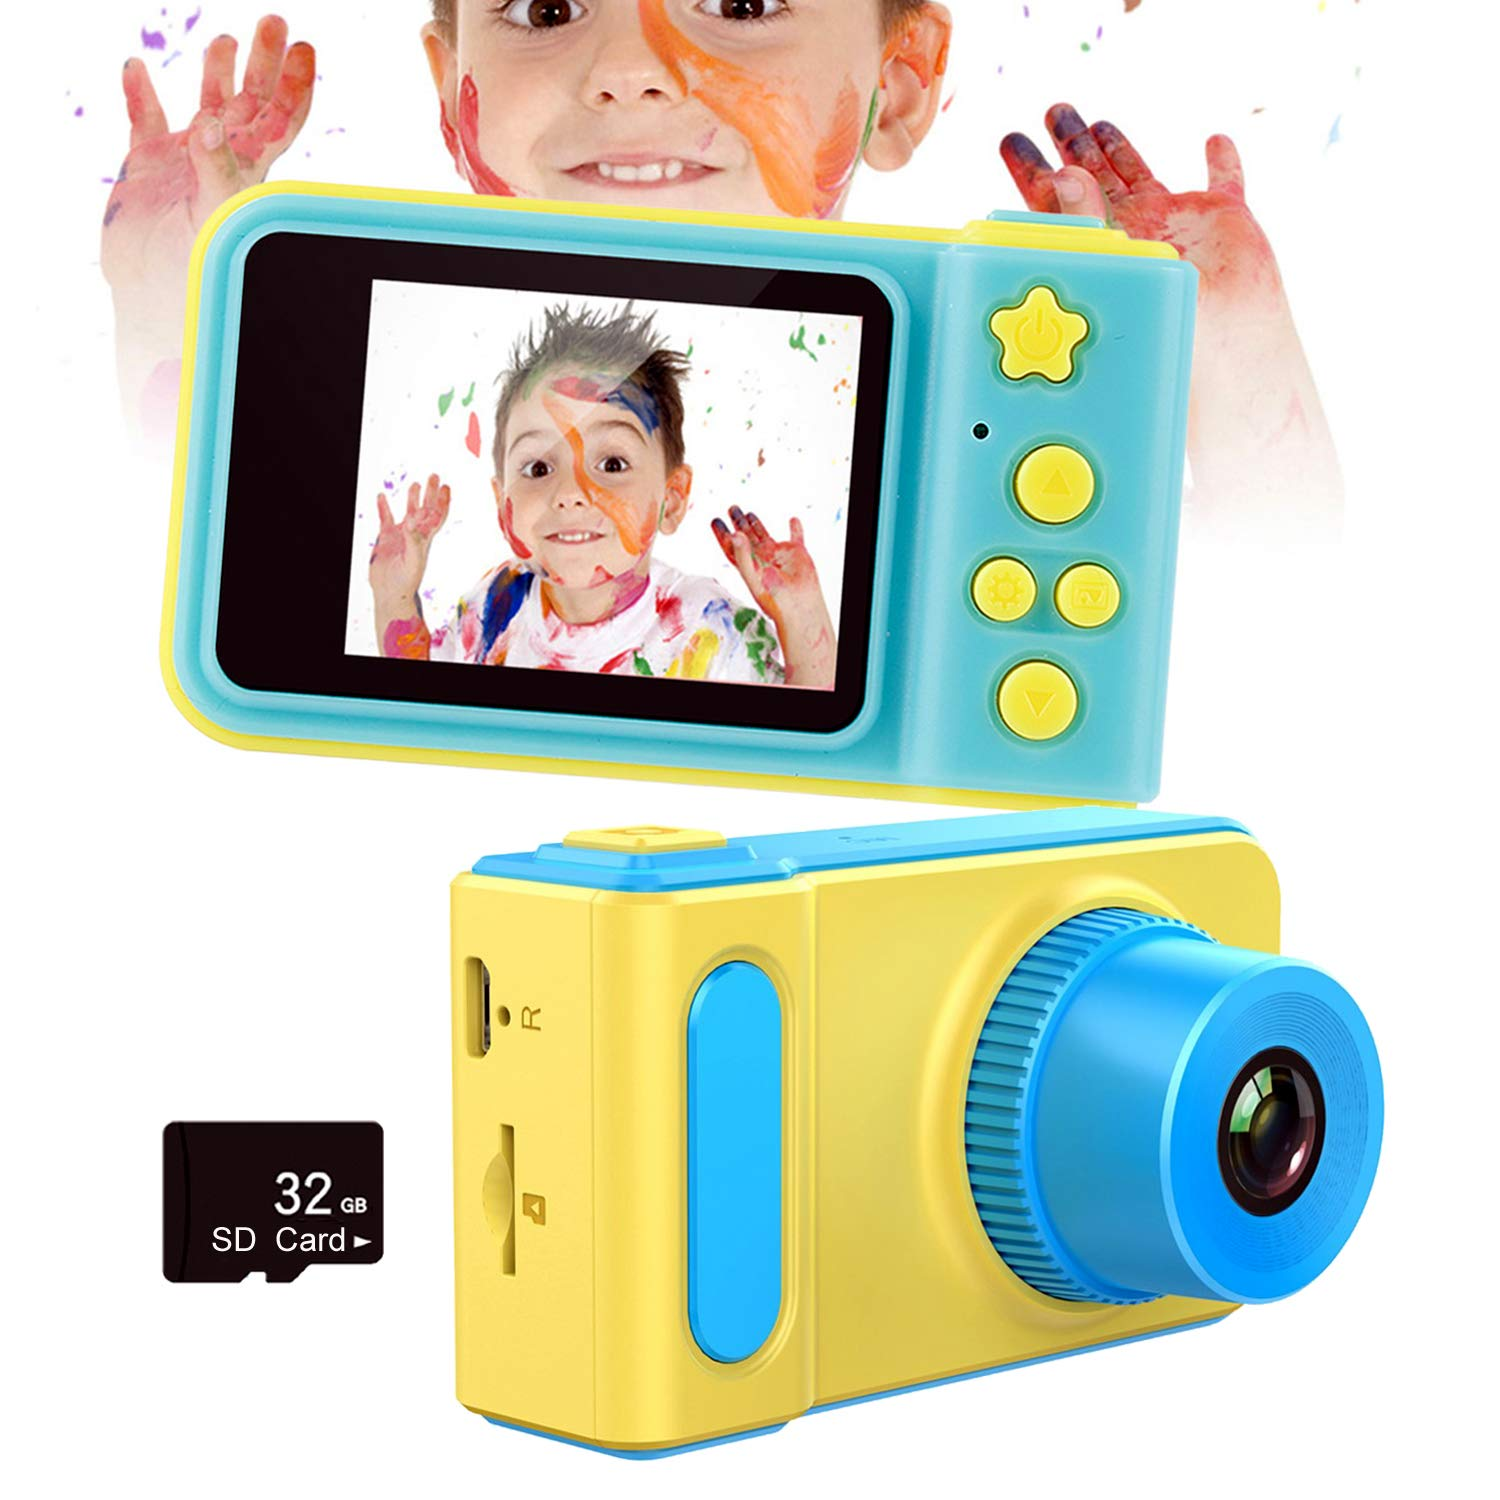 Mrocioa Kids Digital Camera with 32GB SD Card,Mini Camera Toys for Girls and Boys 3-8 Year Old,1080P HD Video Recorder,2'' LCD Screen,USB Rechargeable (Blue) by Mrocioa (Image #1)